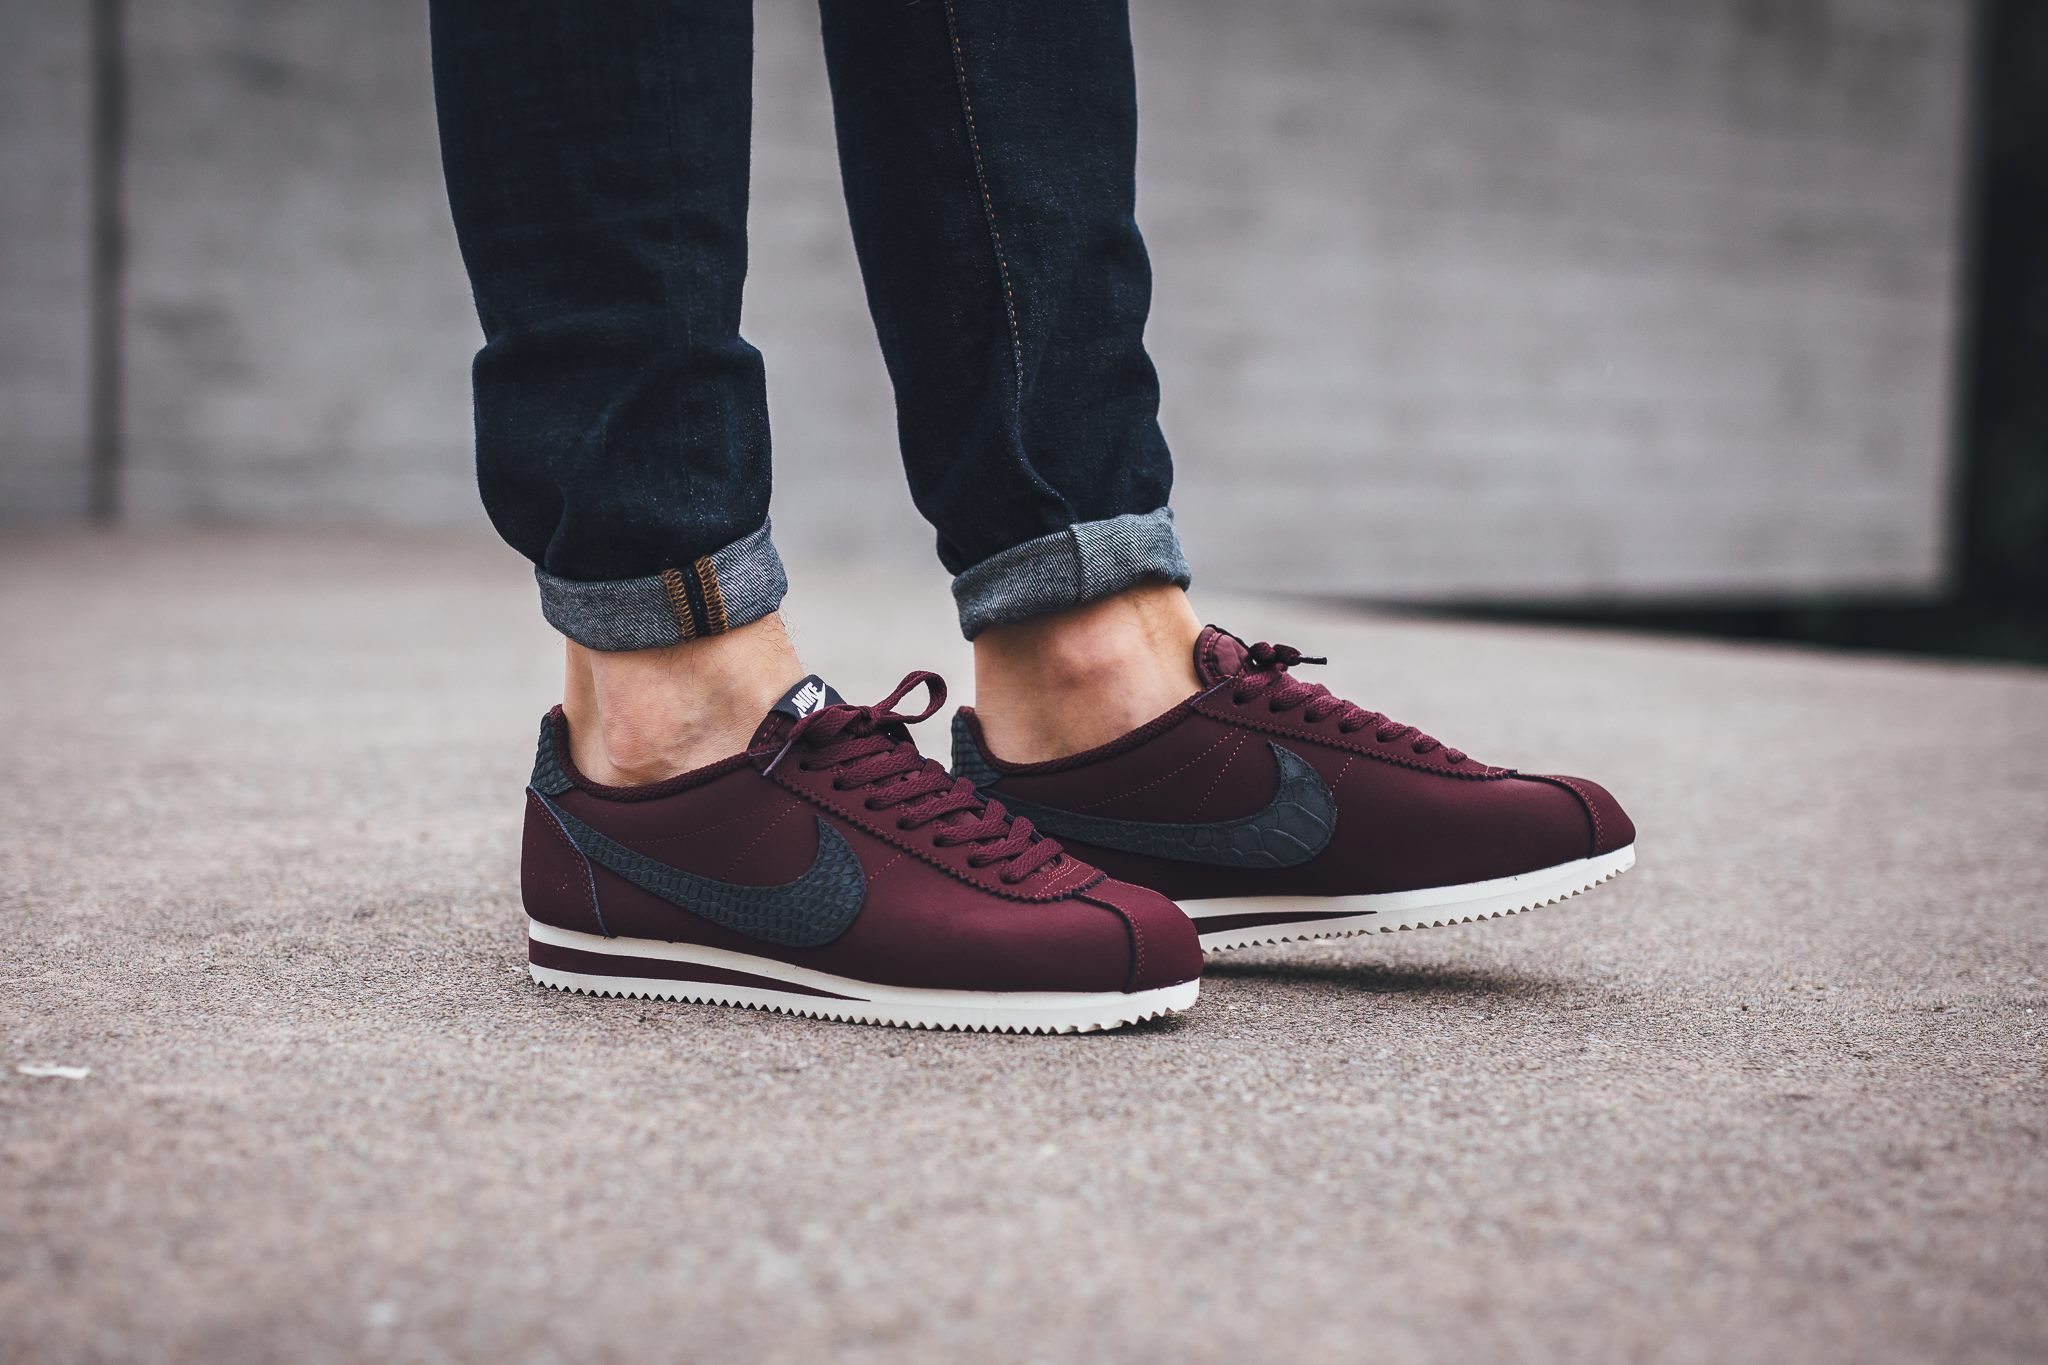 newest e0c1b 057af Nike Classic Cortez Leather SE - Night Maroon Sail